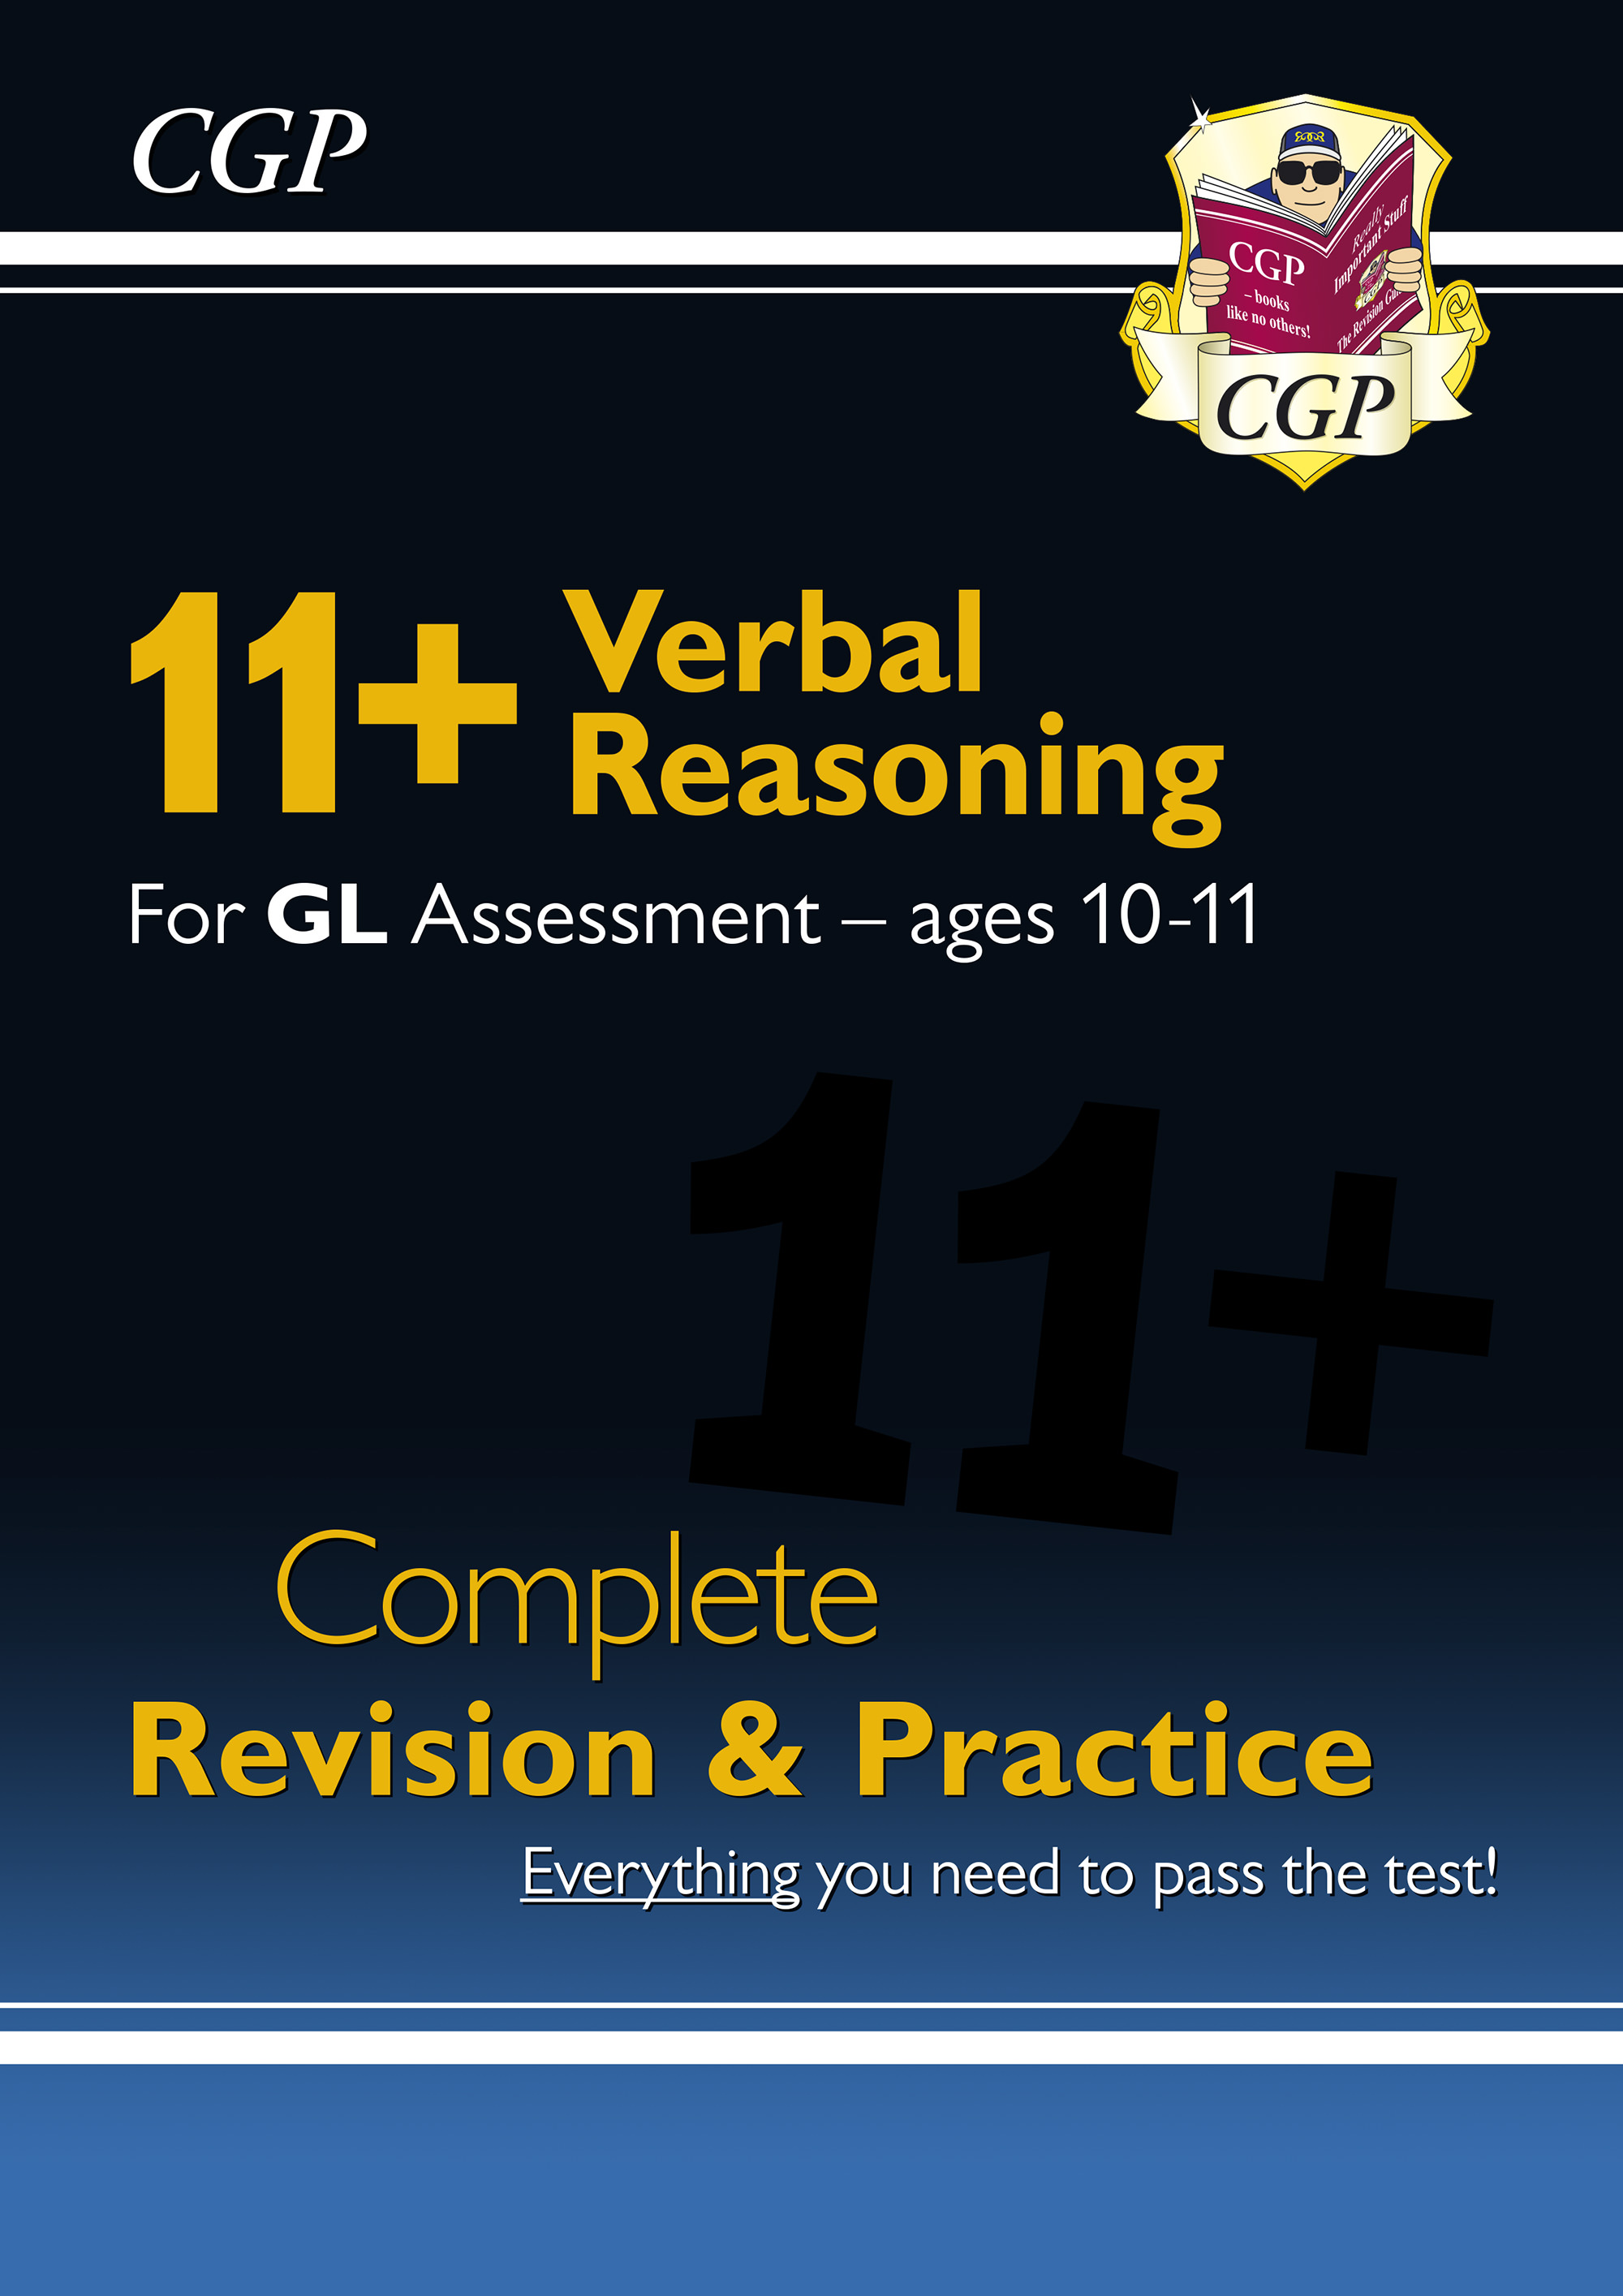 VHSE1DK - New 11+ GL Verbal Reasoning Complete Revision and Practice - Ages 10-11